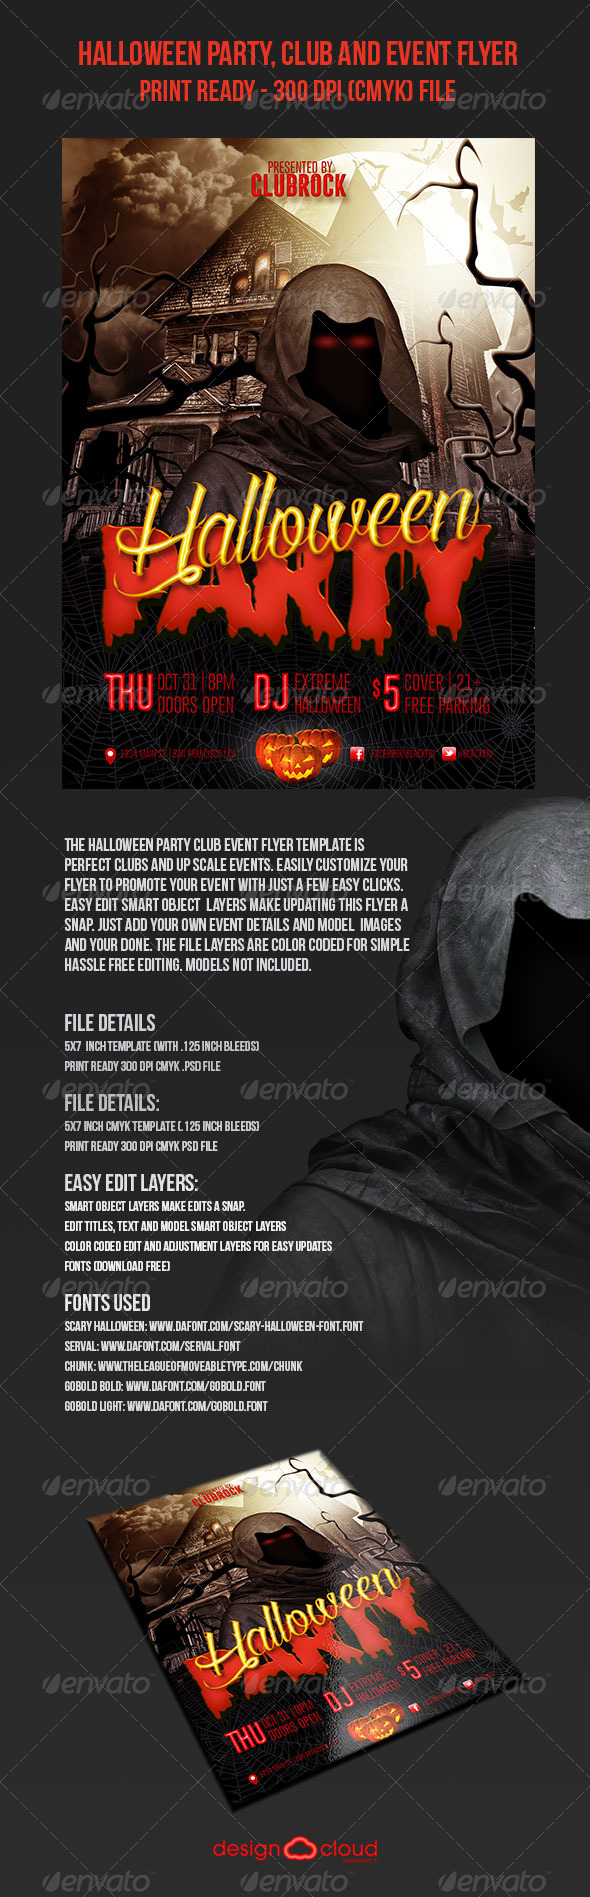 Halloween Party, Club and Event Flyer